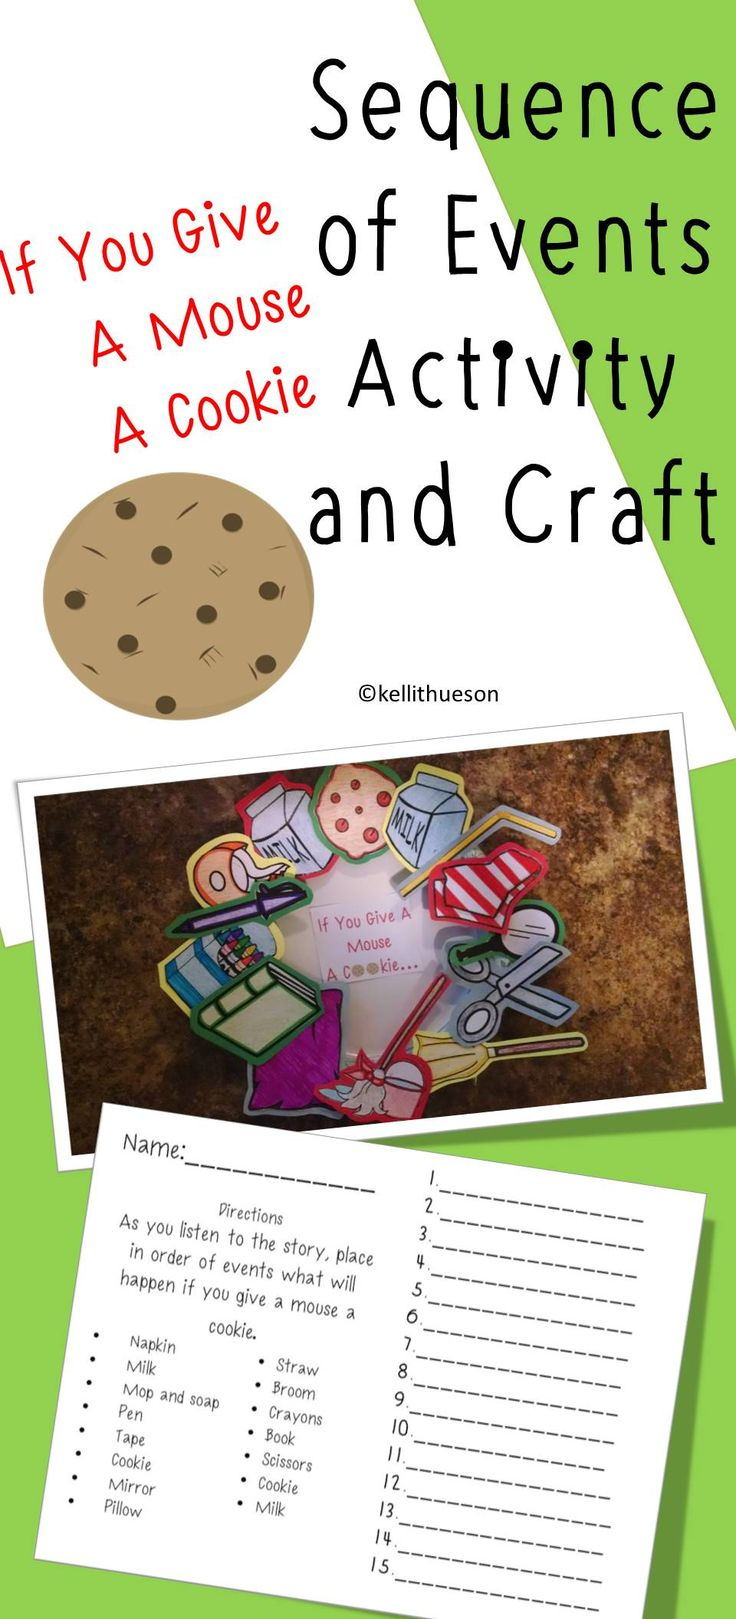 Fun activity and craft that helps teach sequencing of events or even cause and effect. https://www.teacherspayteachers.com/Product/If-You-Give-a-Mouse-a-Cookie-Sequence-of-Events-Activity-and-Craft-2795051